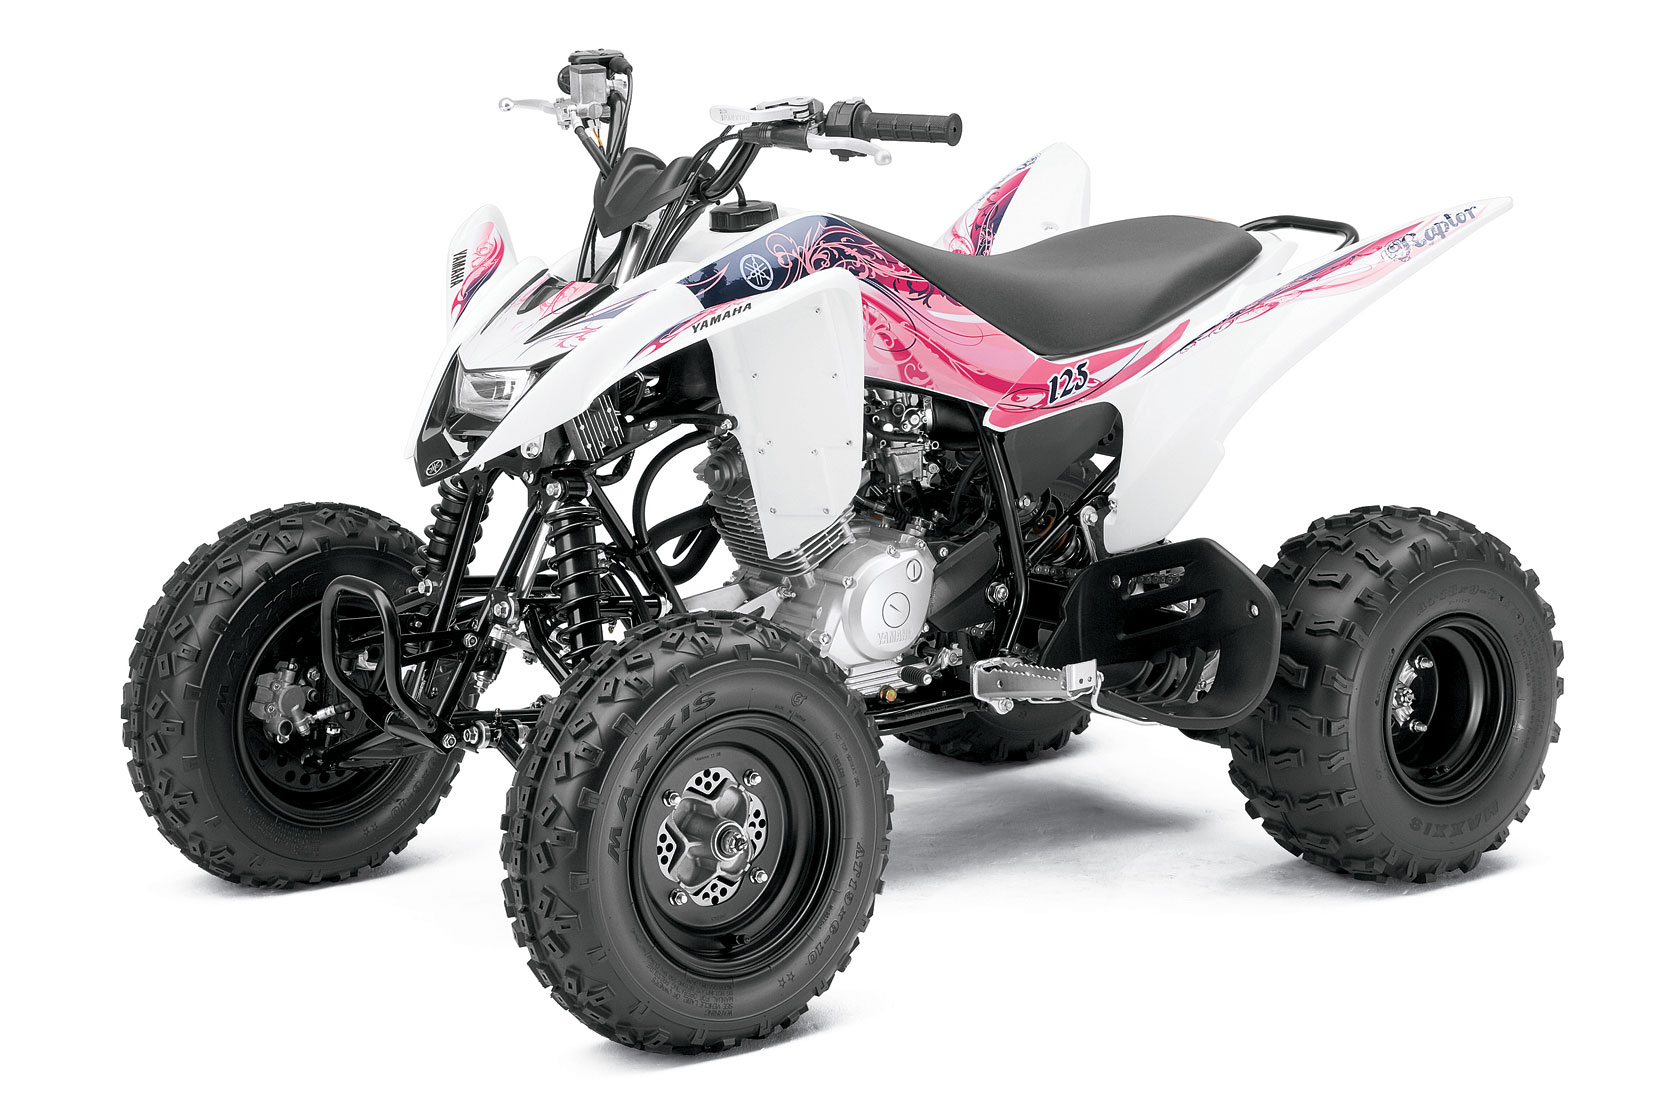 yamaha raptor 125 specs 2010 2011 autoevolution. Black Bedroom Furniture Sets. Home Design Ideas